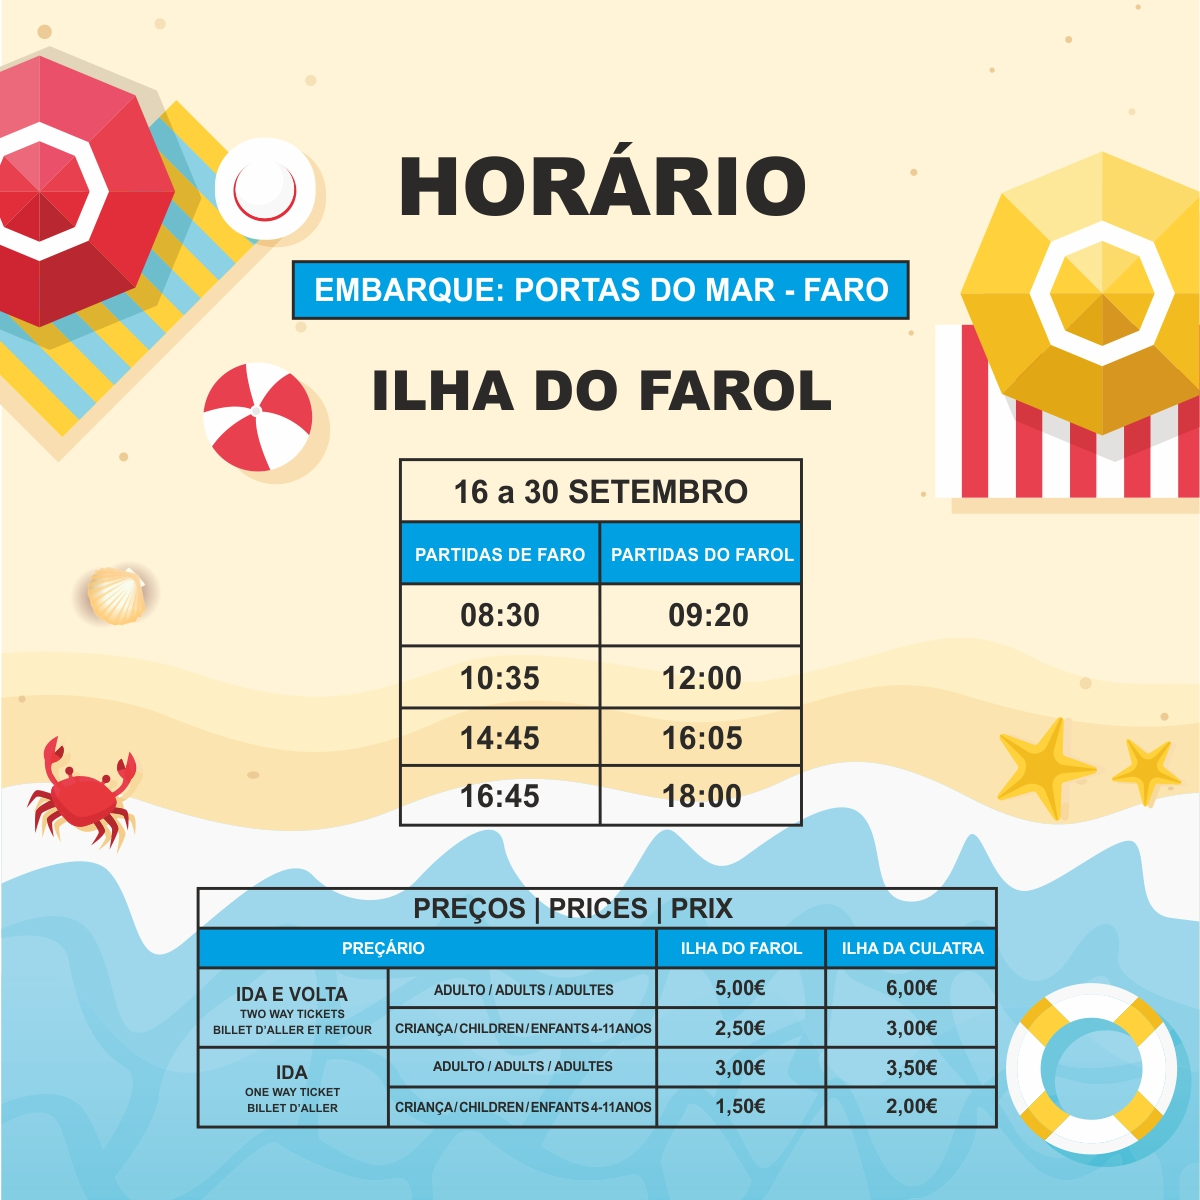 ferry timetable between faro and ilha do farol